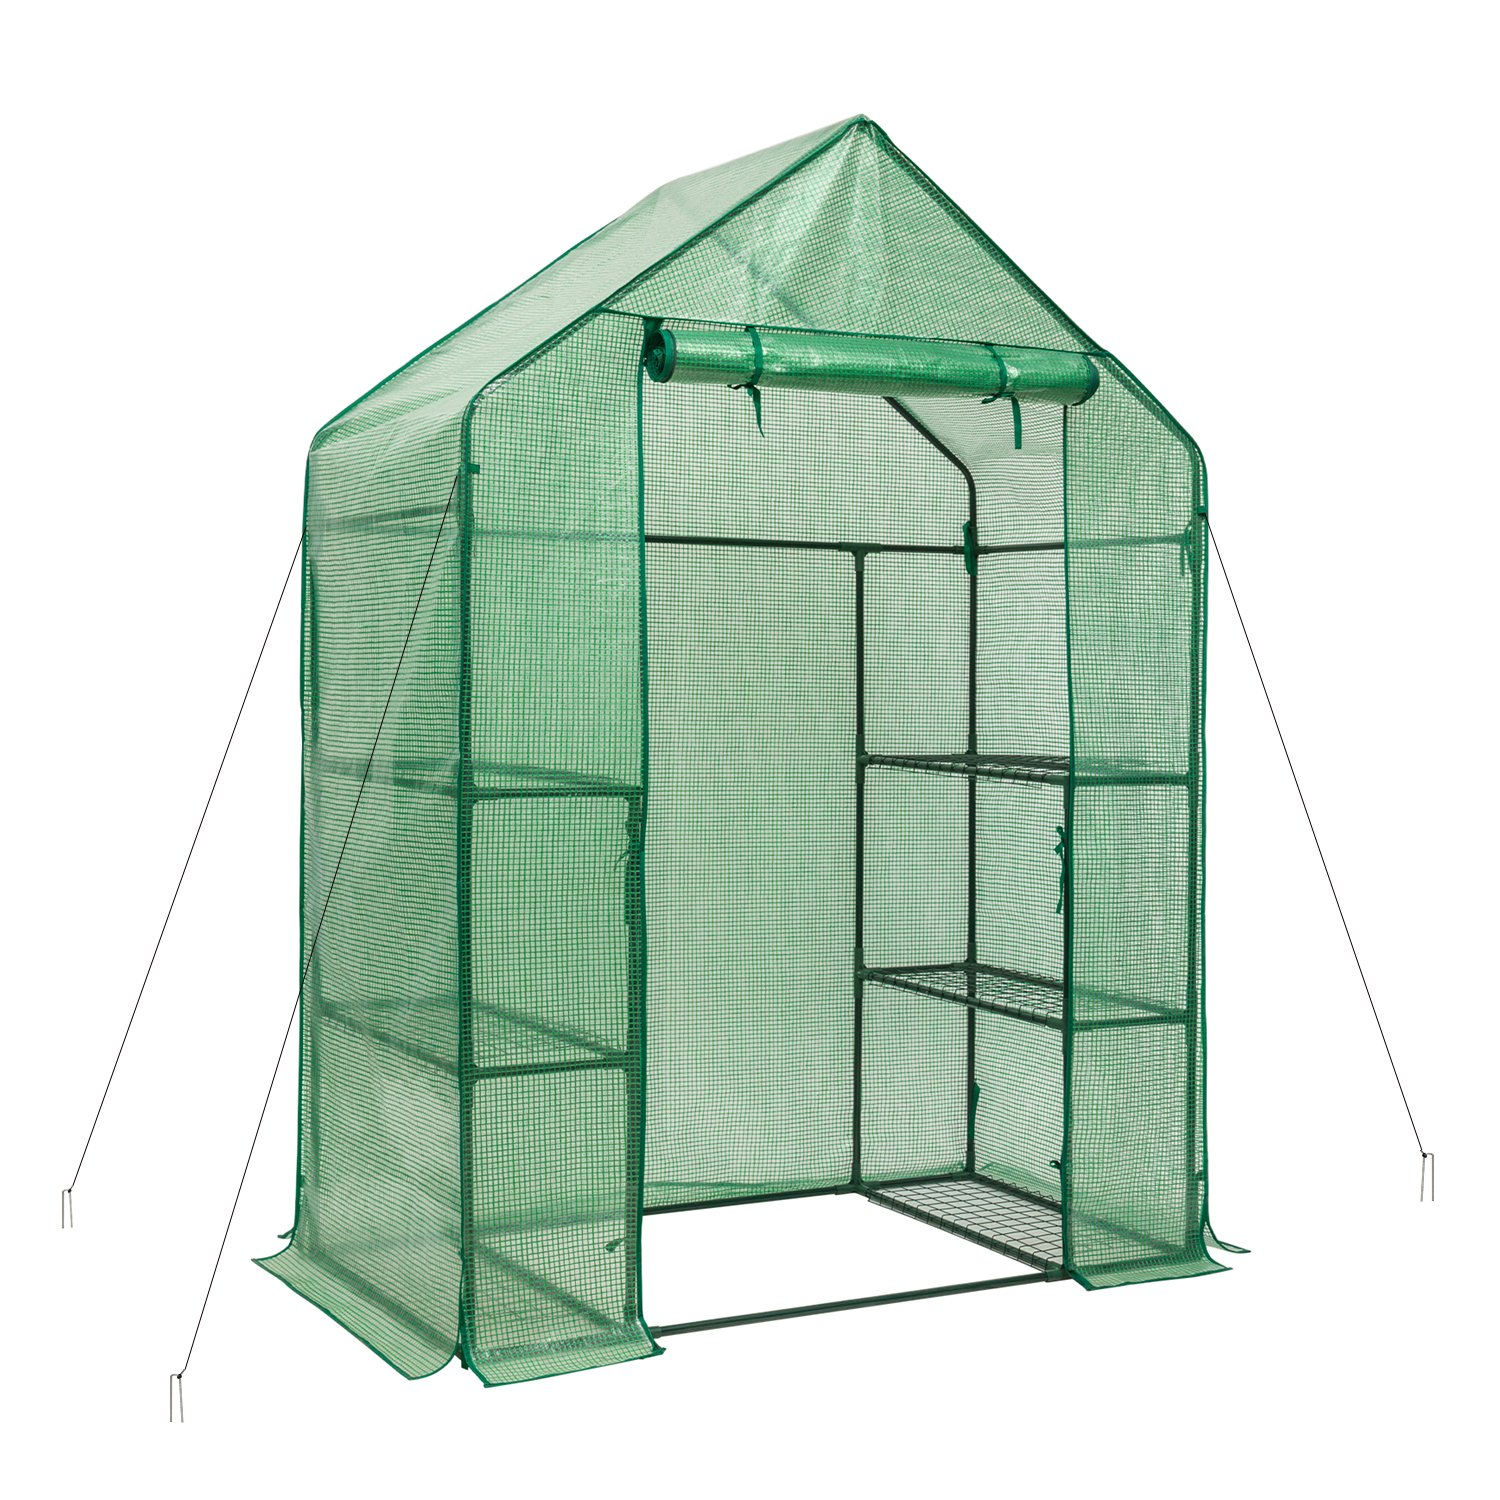 DOEWORKS Portable Walk-in Plant Greenhouse with PE Cover, 3 Tier 6 Shelf Garden House for Outdoor, 54.3''x 27.5''x 77.2''